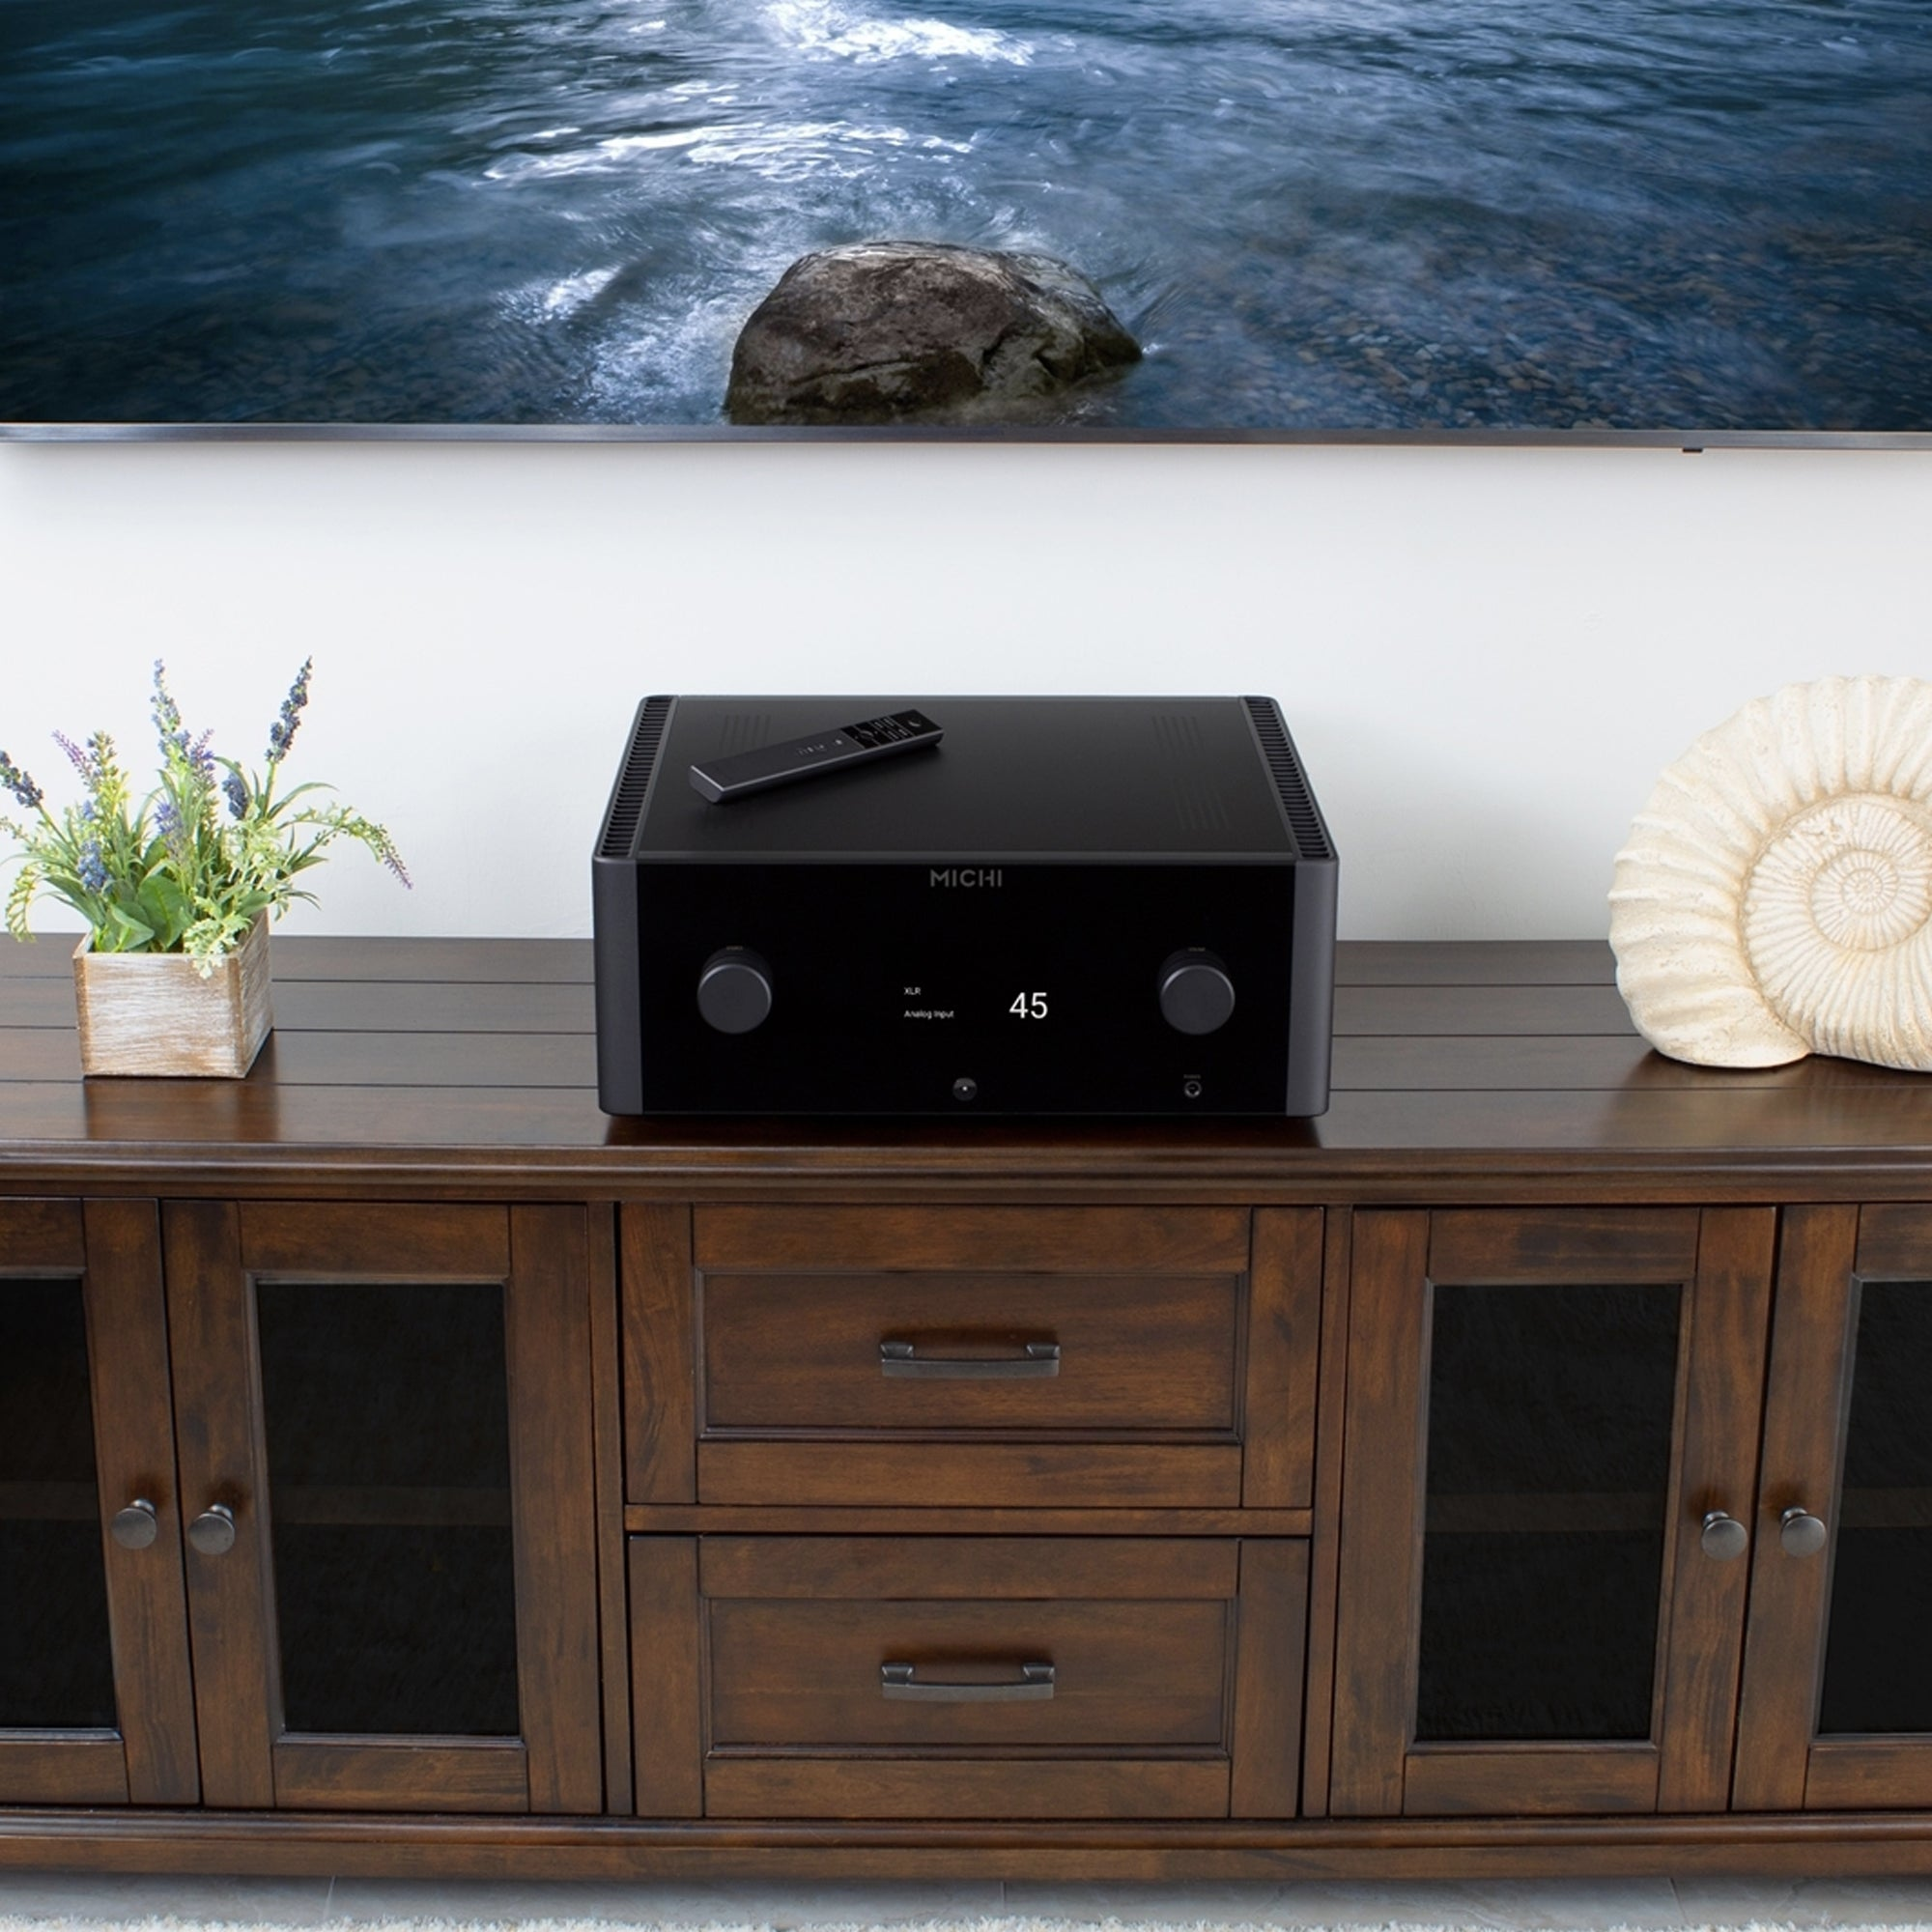 Rotel Michi X5 Integrated Amplifier